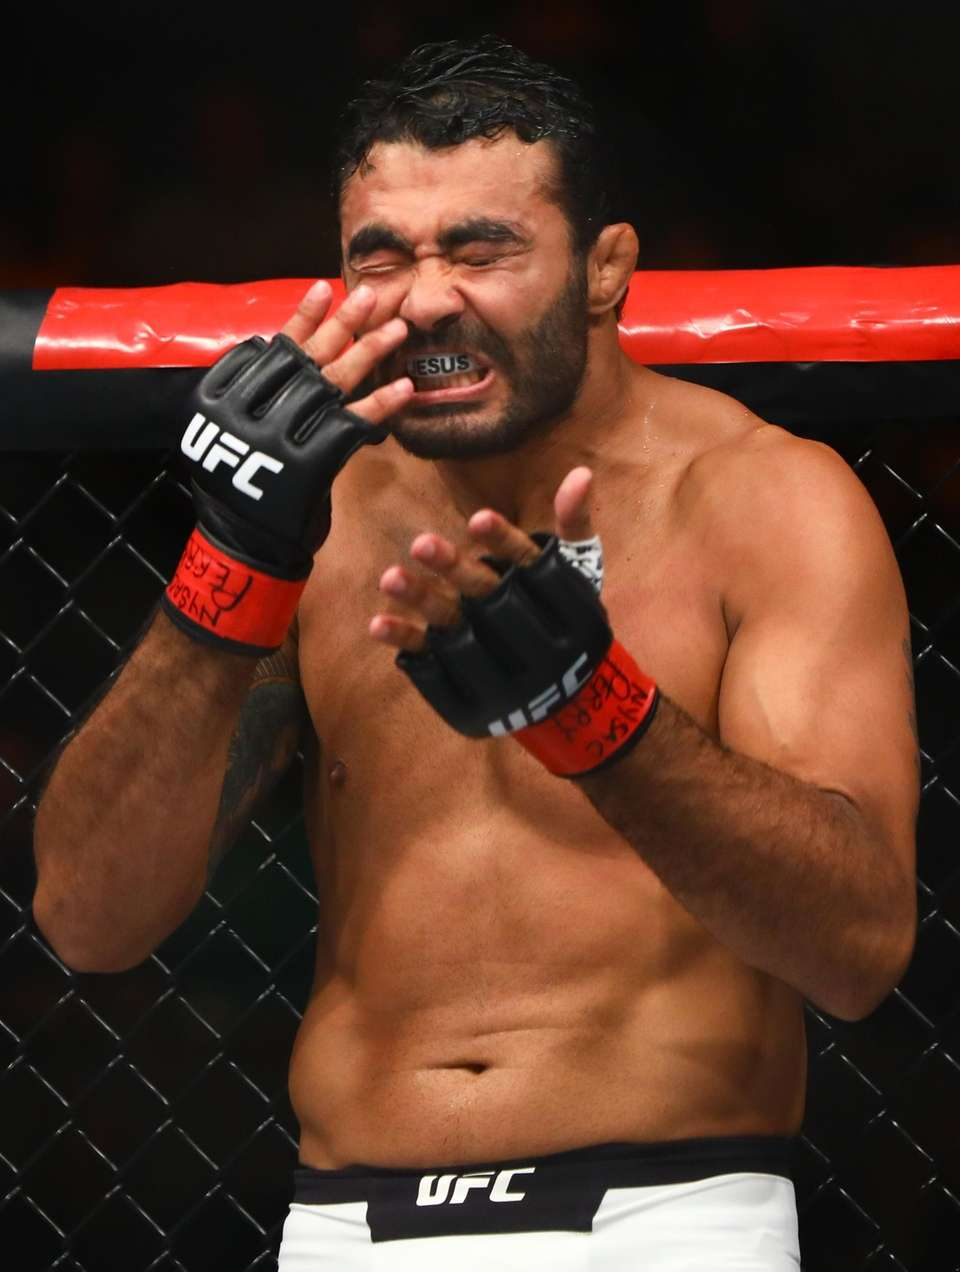 Middleweight Rafael Natal smacks his face before his